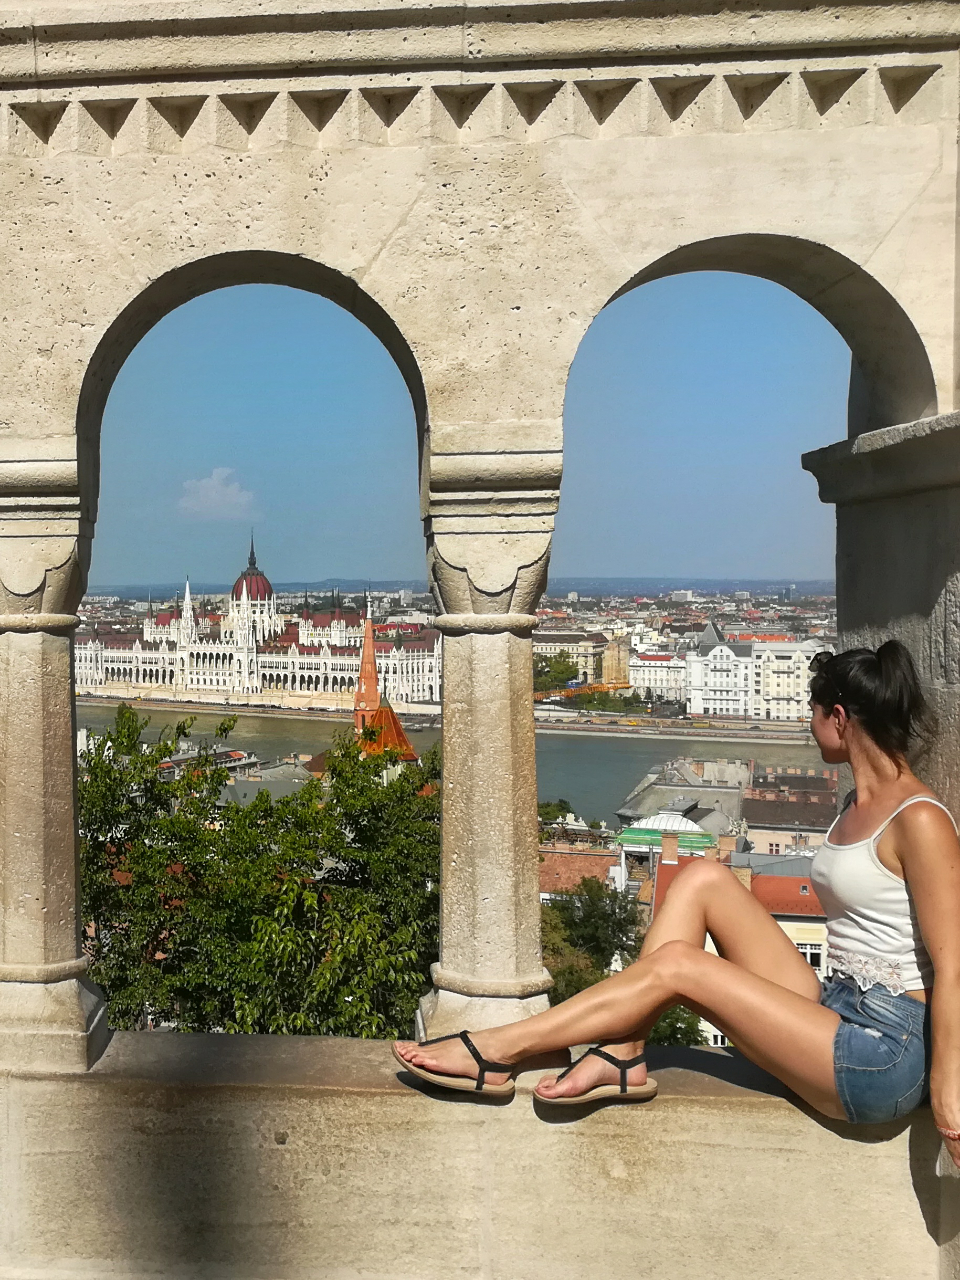 From fisherman's bastion